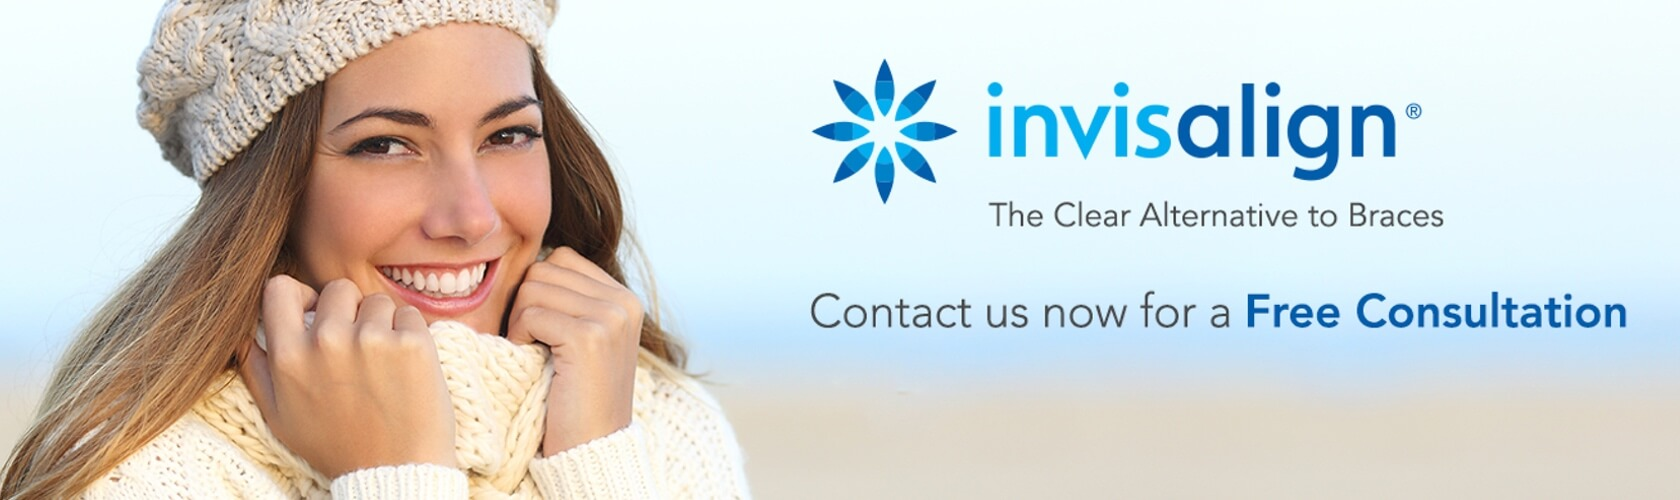 Invisalign Provider in Chatsworth